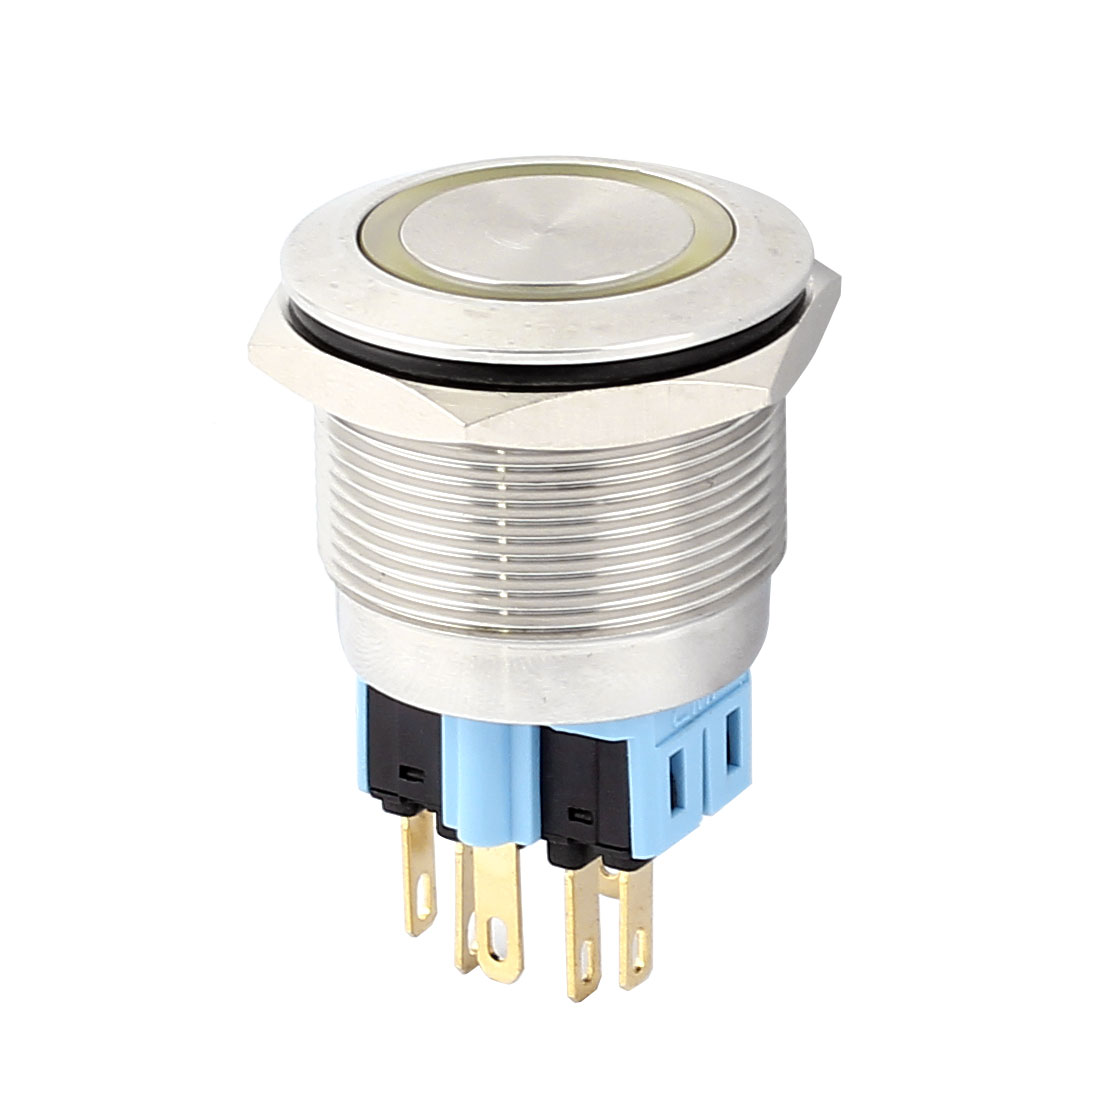 DC 12V 20mm Yellow LED Light 25mm Mounted Thread Latching Push Button Swith